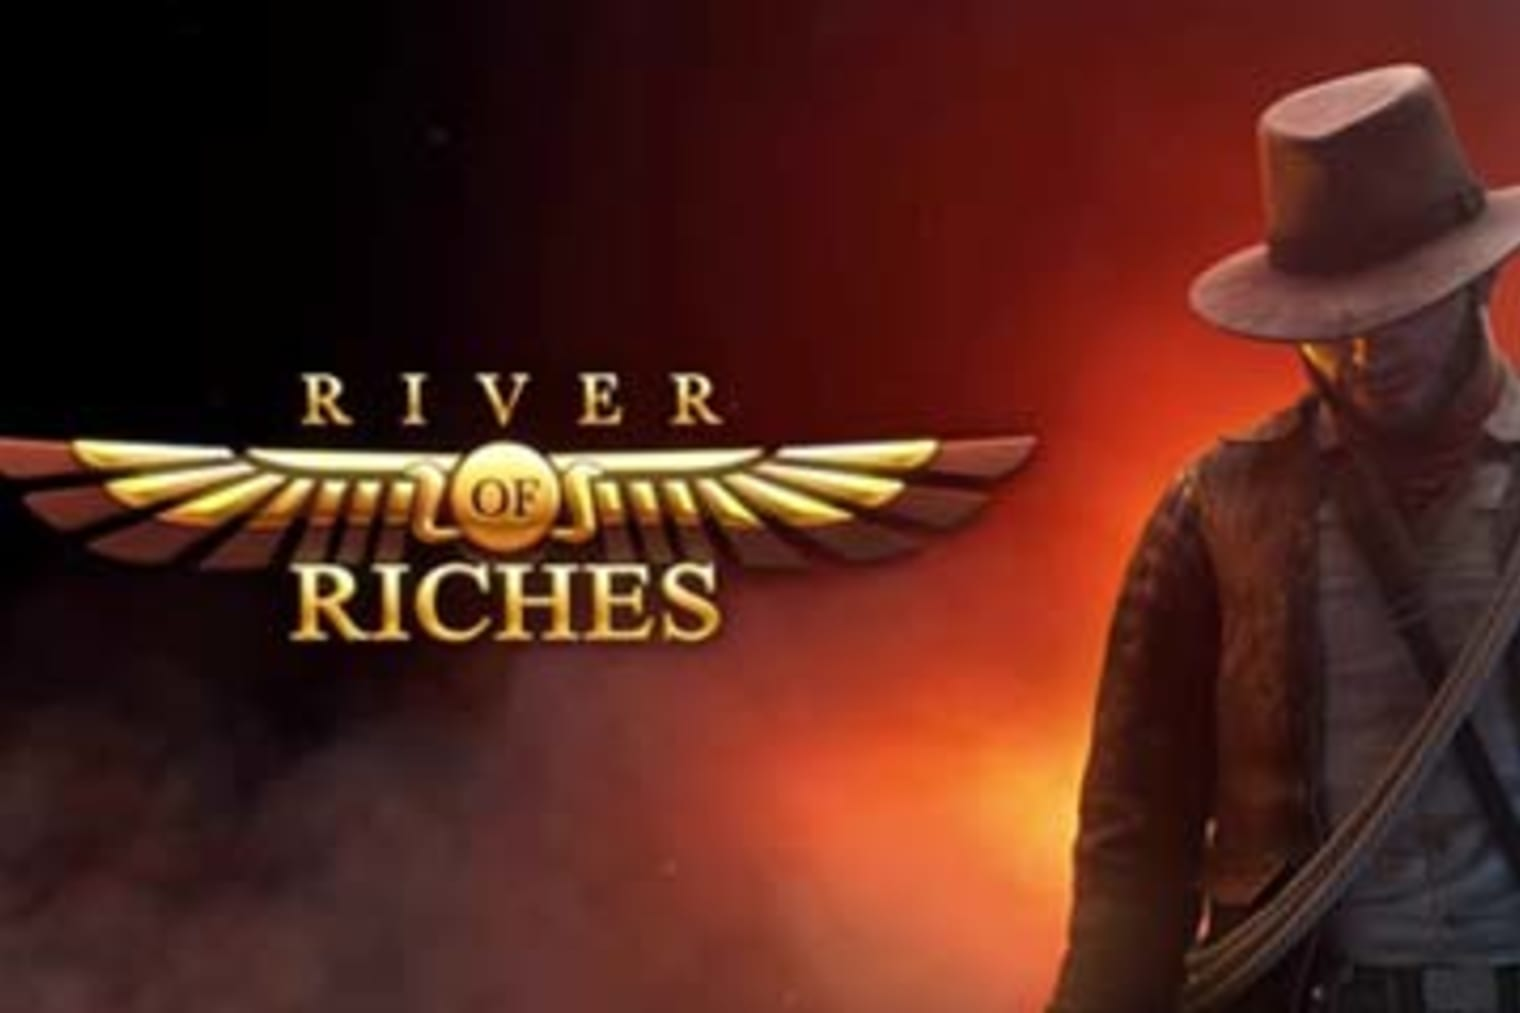 River of Riches